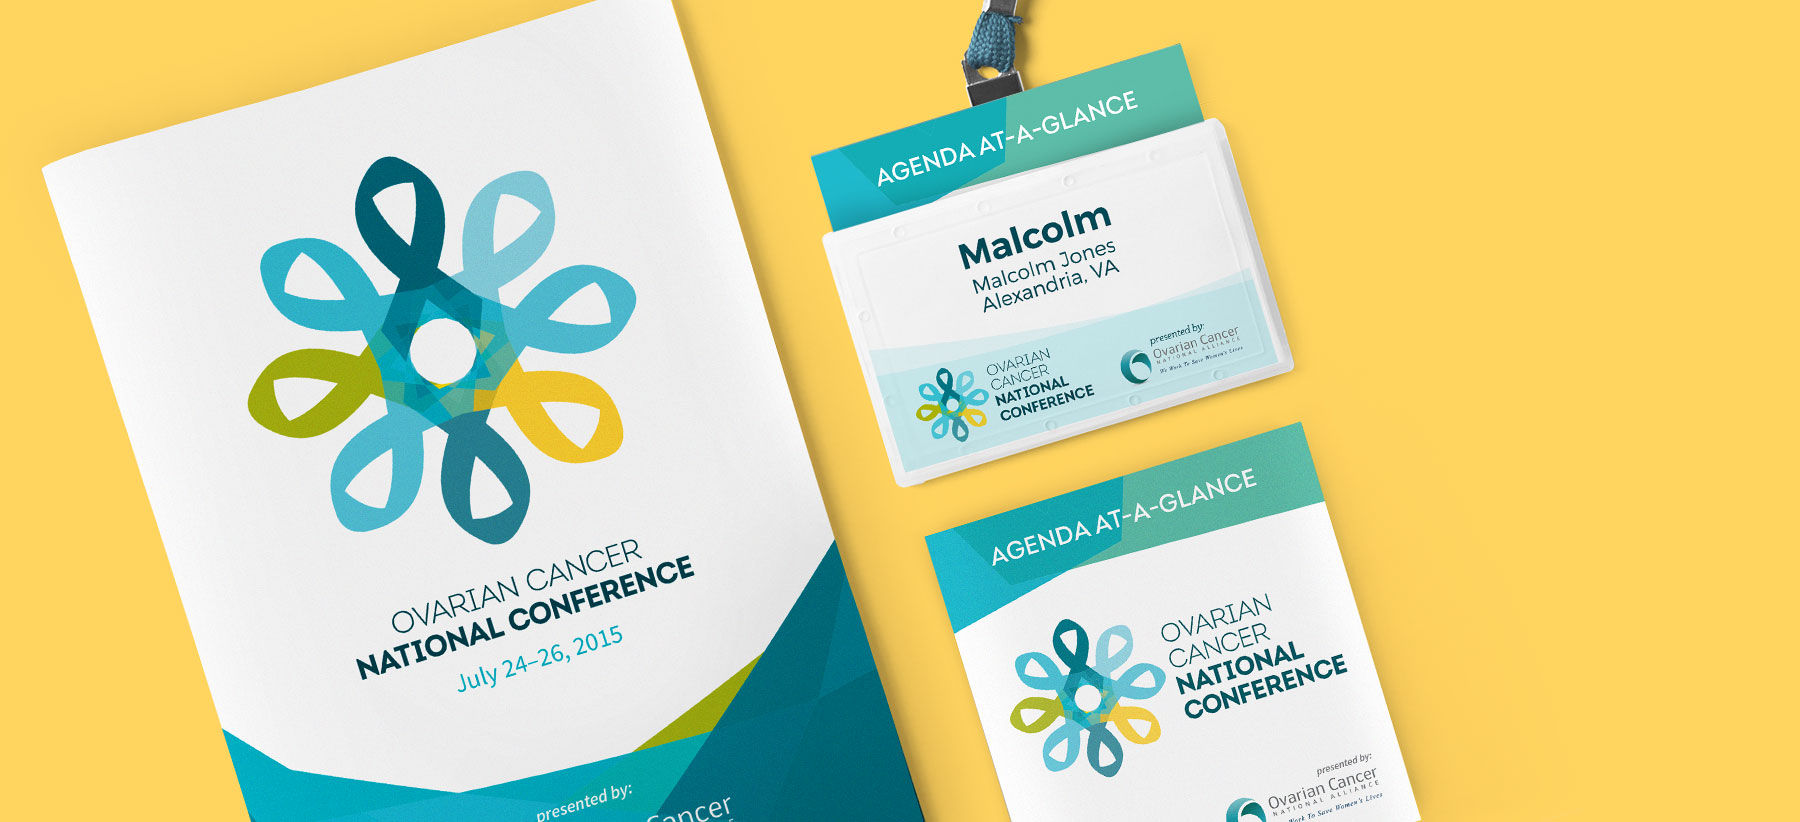 conference program, badge, and pocket agenda print design samples